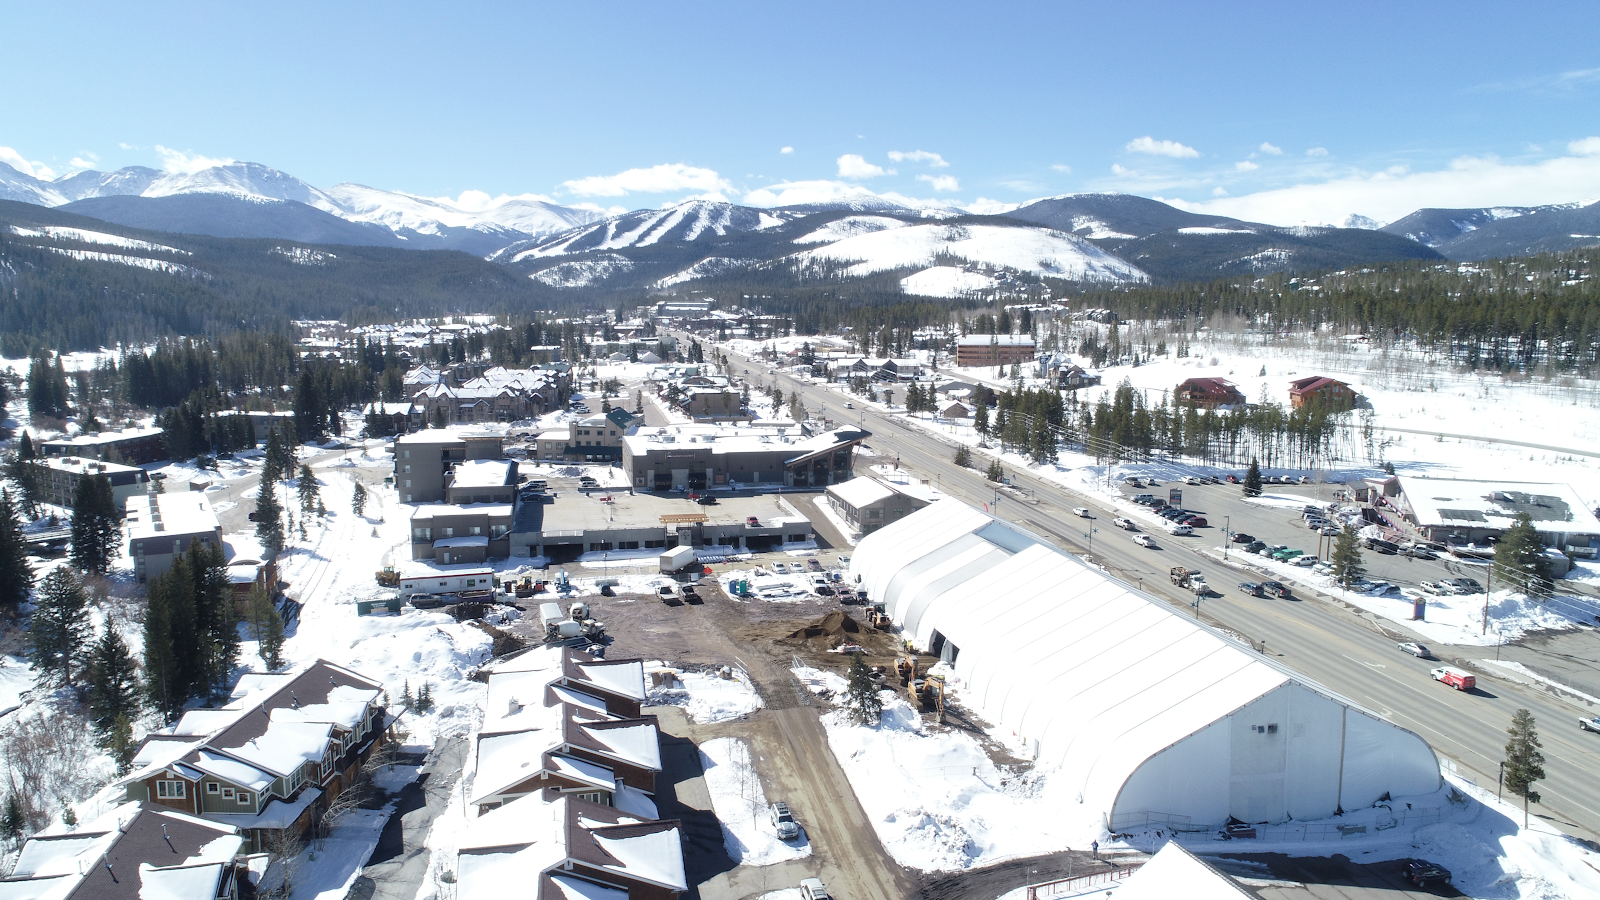 Large snowy construction site with Allsite tensioned fabric structure aerial view of the structure and surrounding area